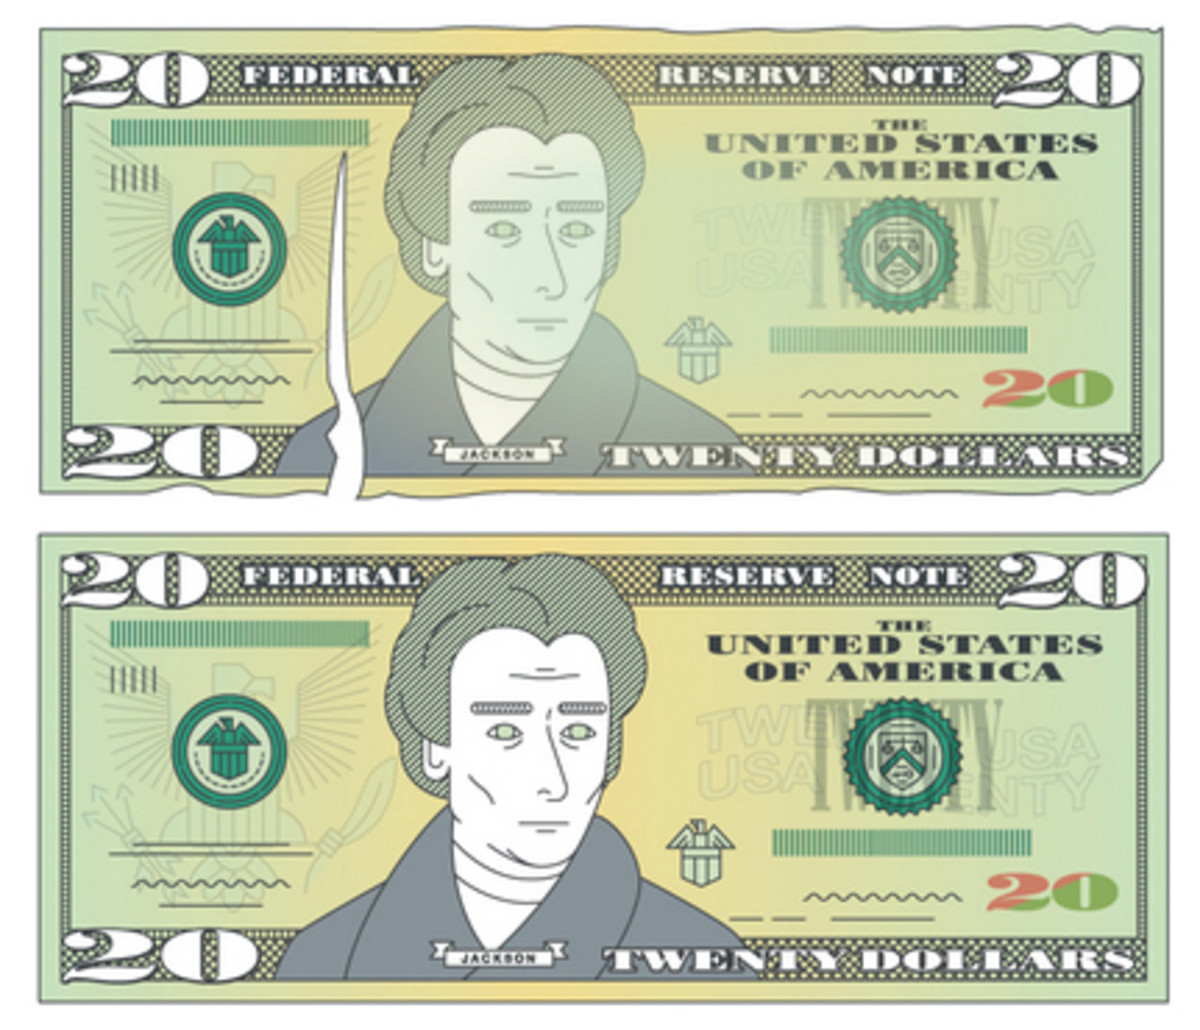 (Image courtesy https://www.uscurrency.gov)